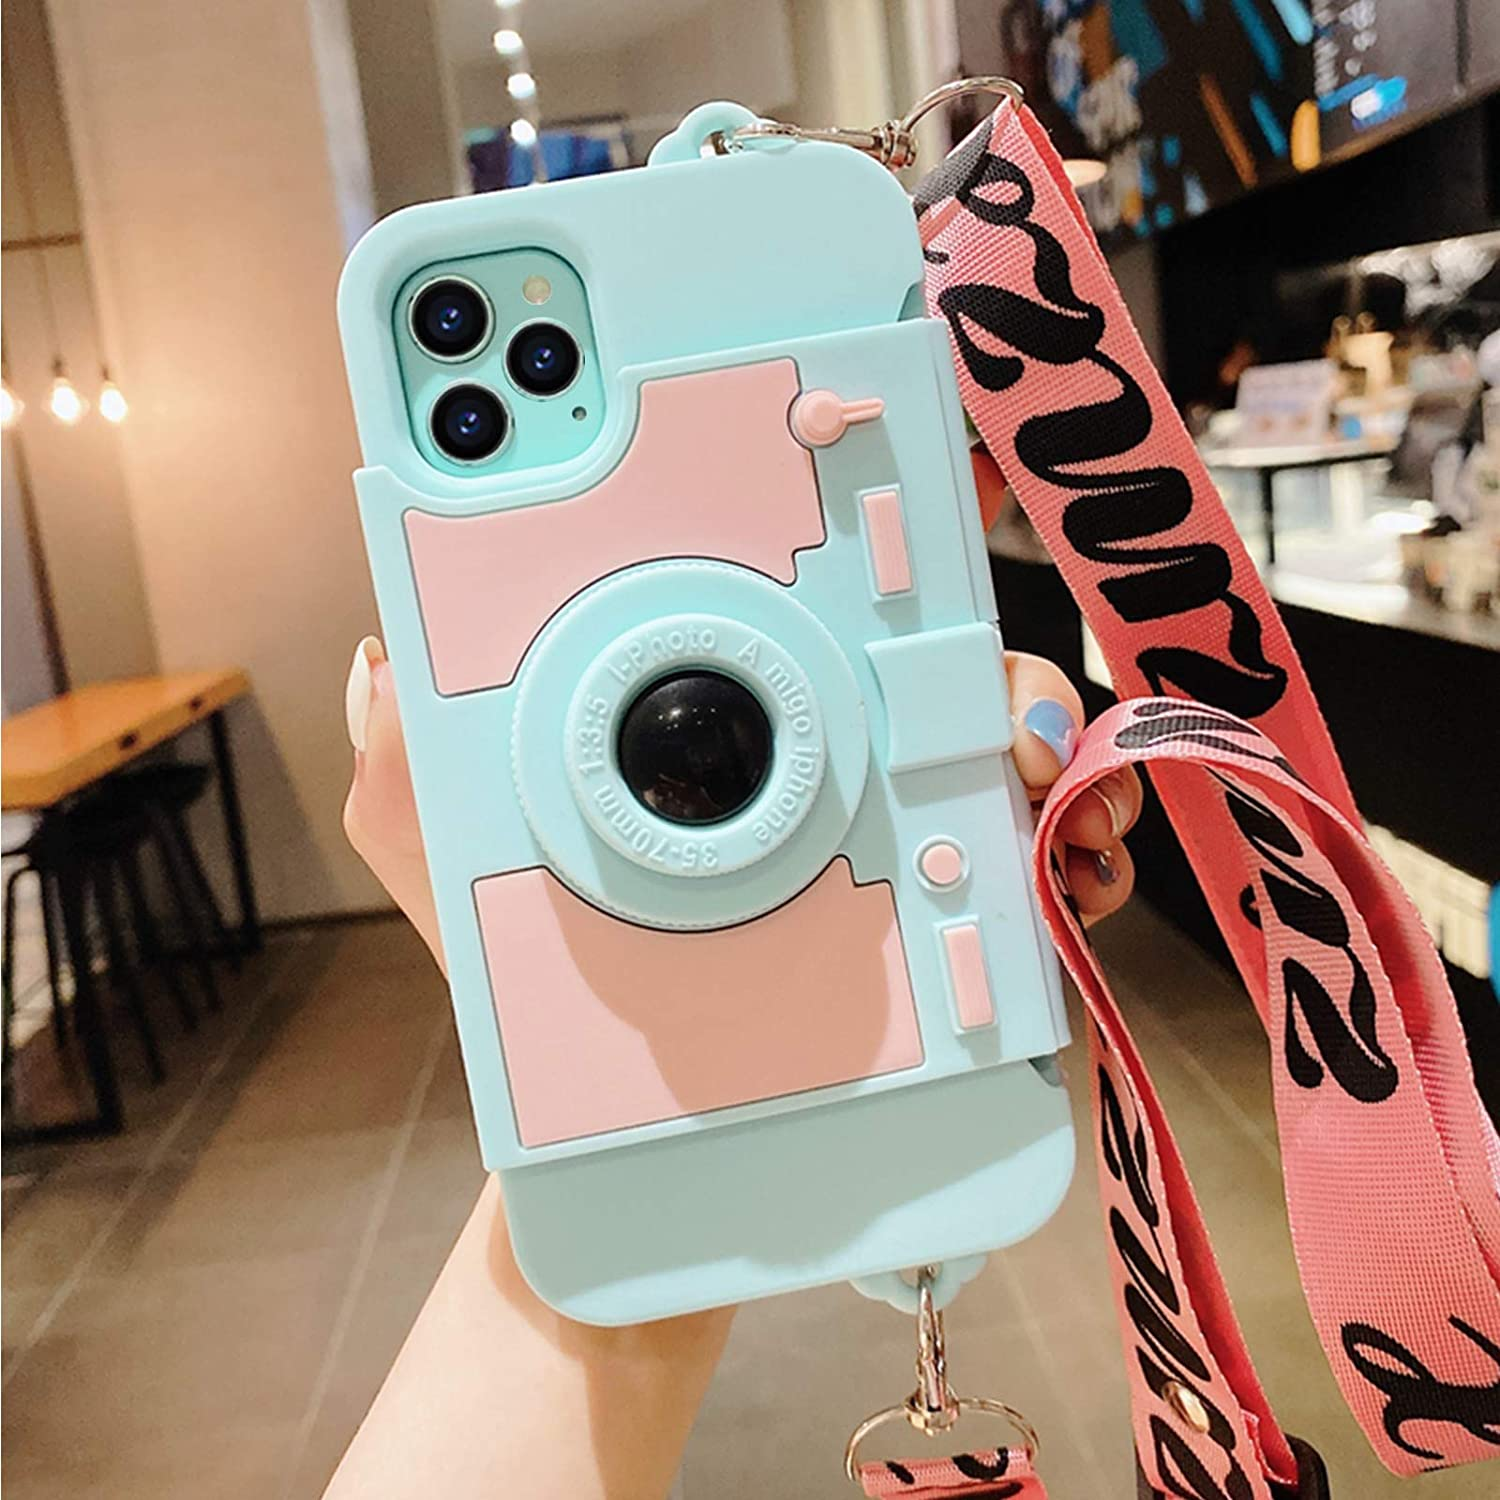 Compatible with iPhone 12 Pro Max Case Cute Card Wallet Holder for Women Girls Cool Unique Camera Design Kickstand Girly Phone Case 3D Silicone Cover with Crossbody Strap Lanyard Blue